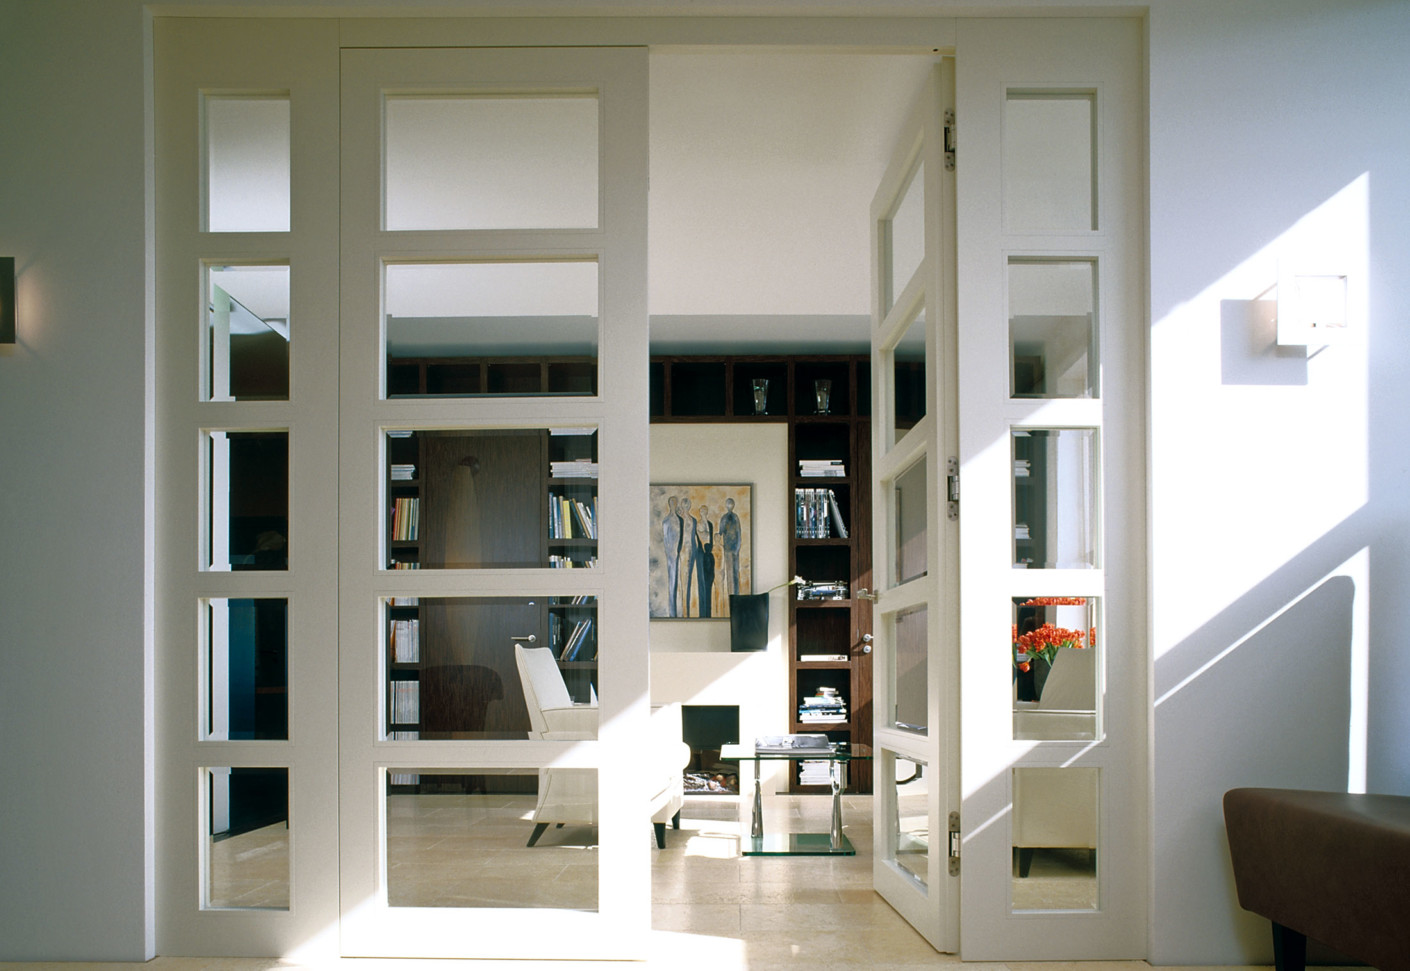 G10 Double Door With 2 Sidelights By Bartels Stylepark